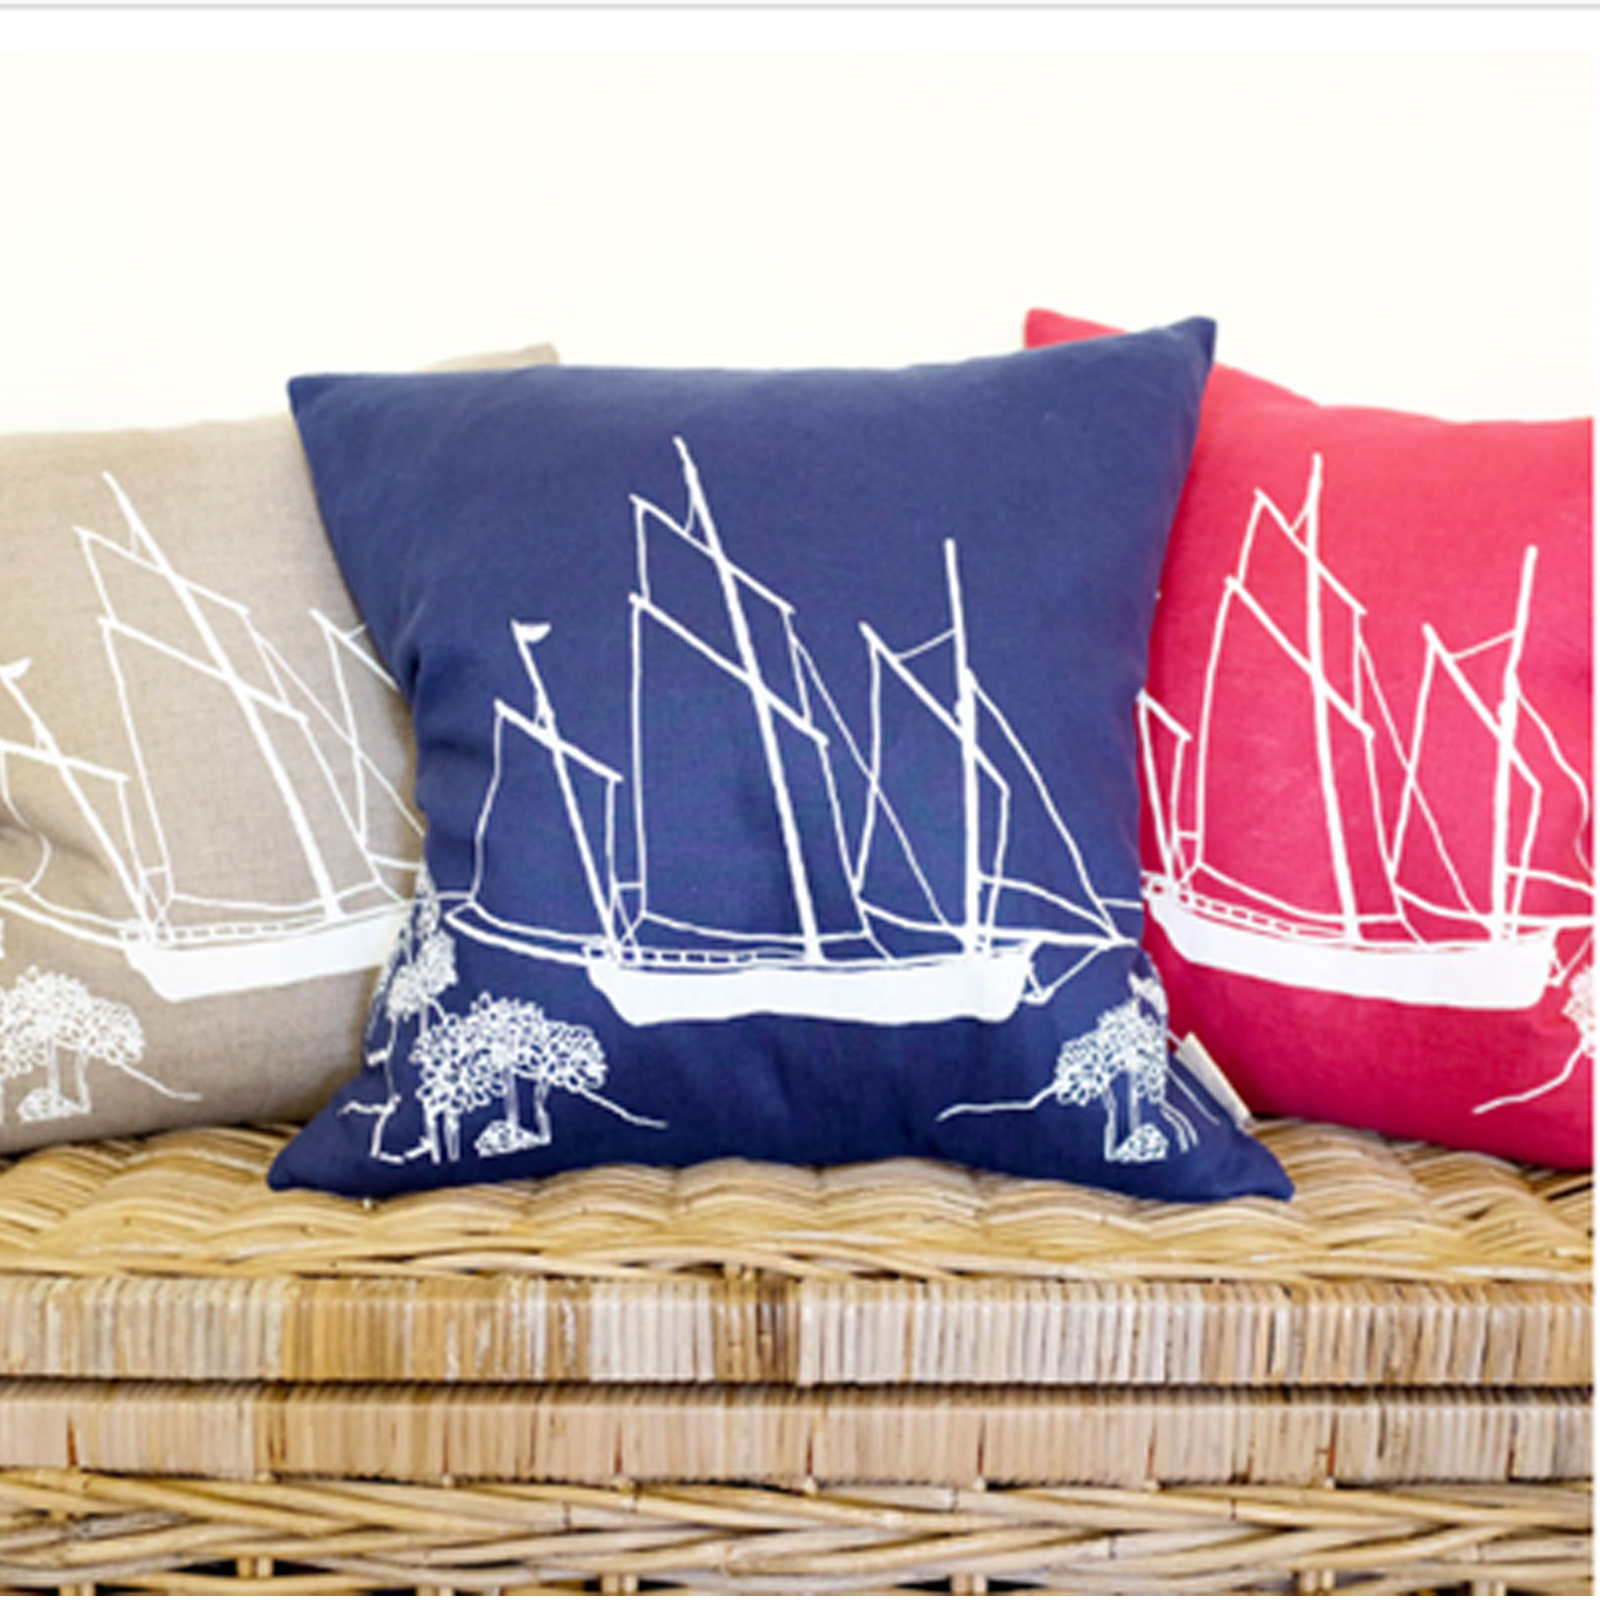 Cushion - Hand Printed Linen in Deep Blue - Seafarers Collection by Helen Round